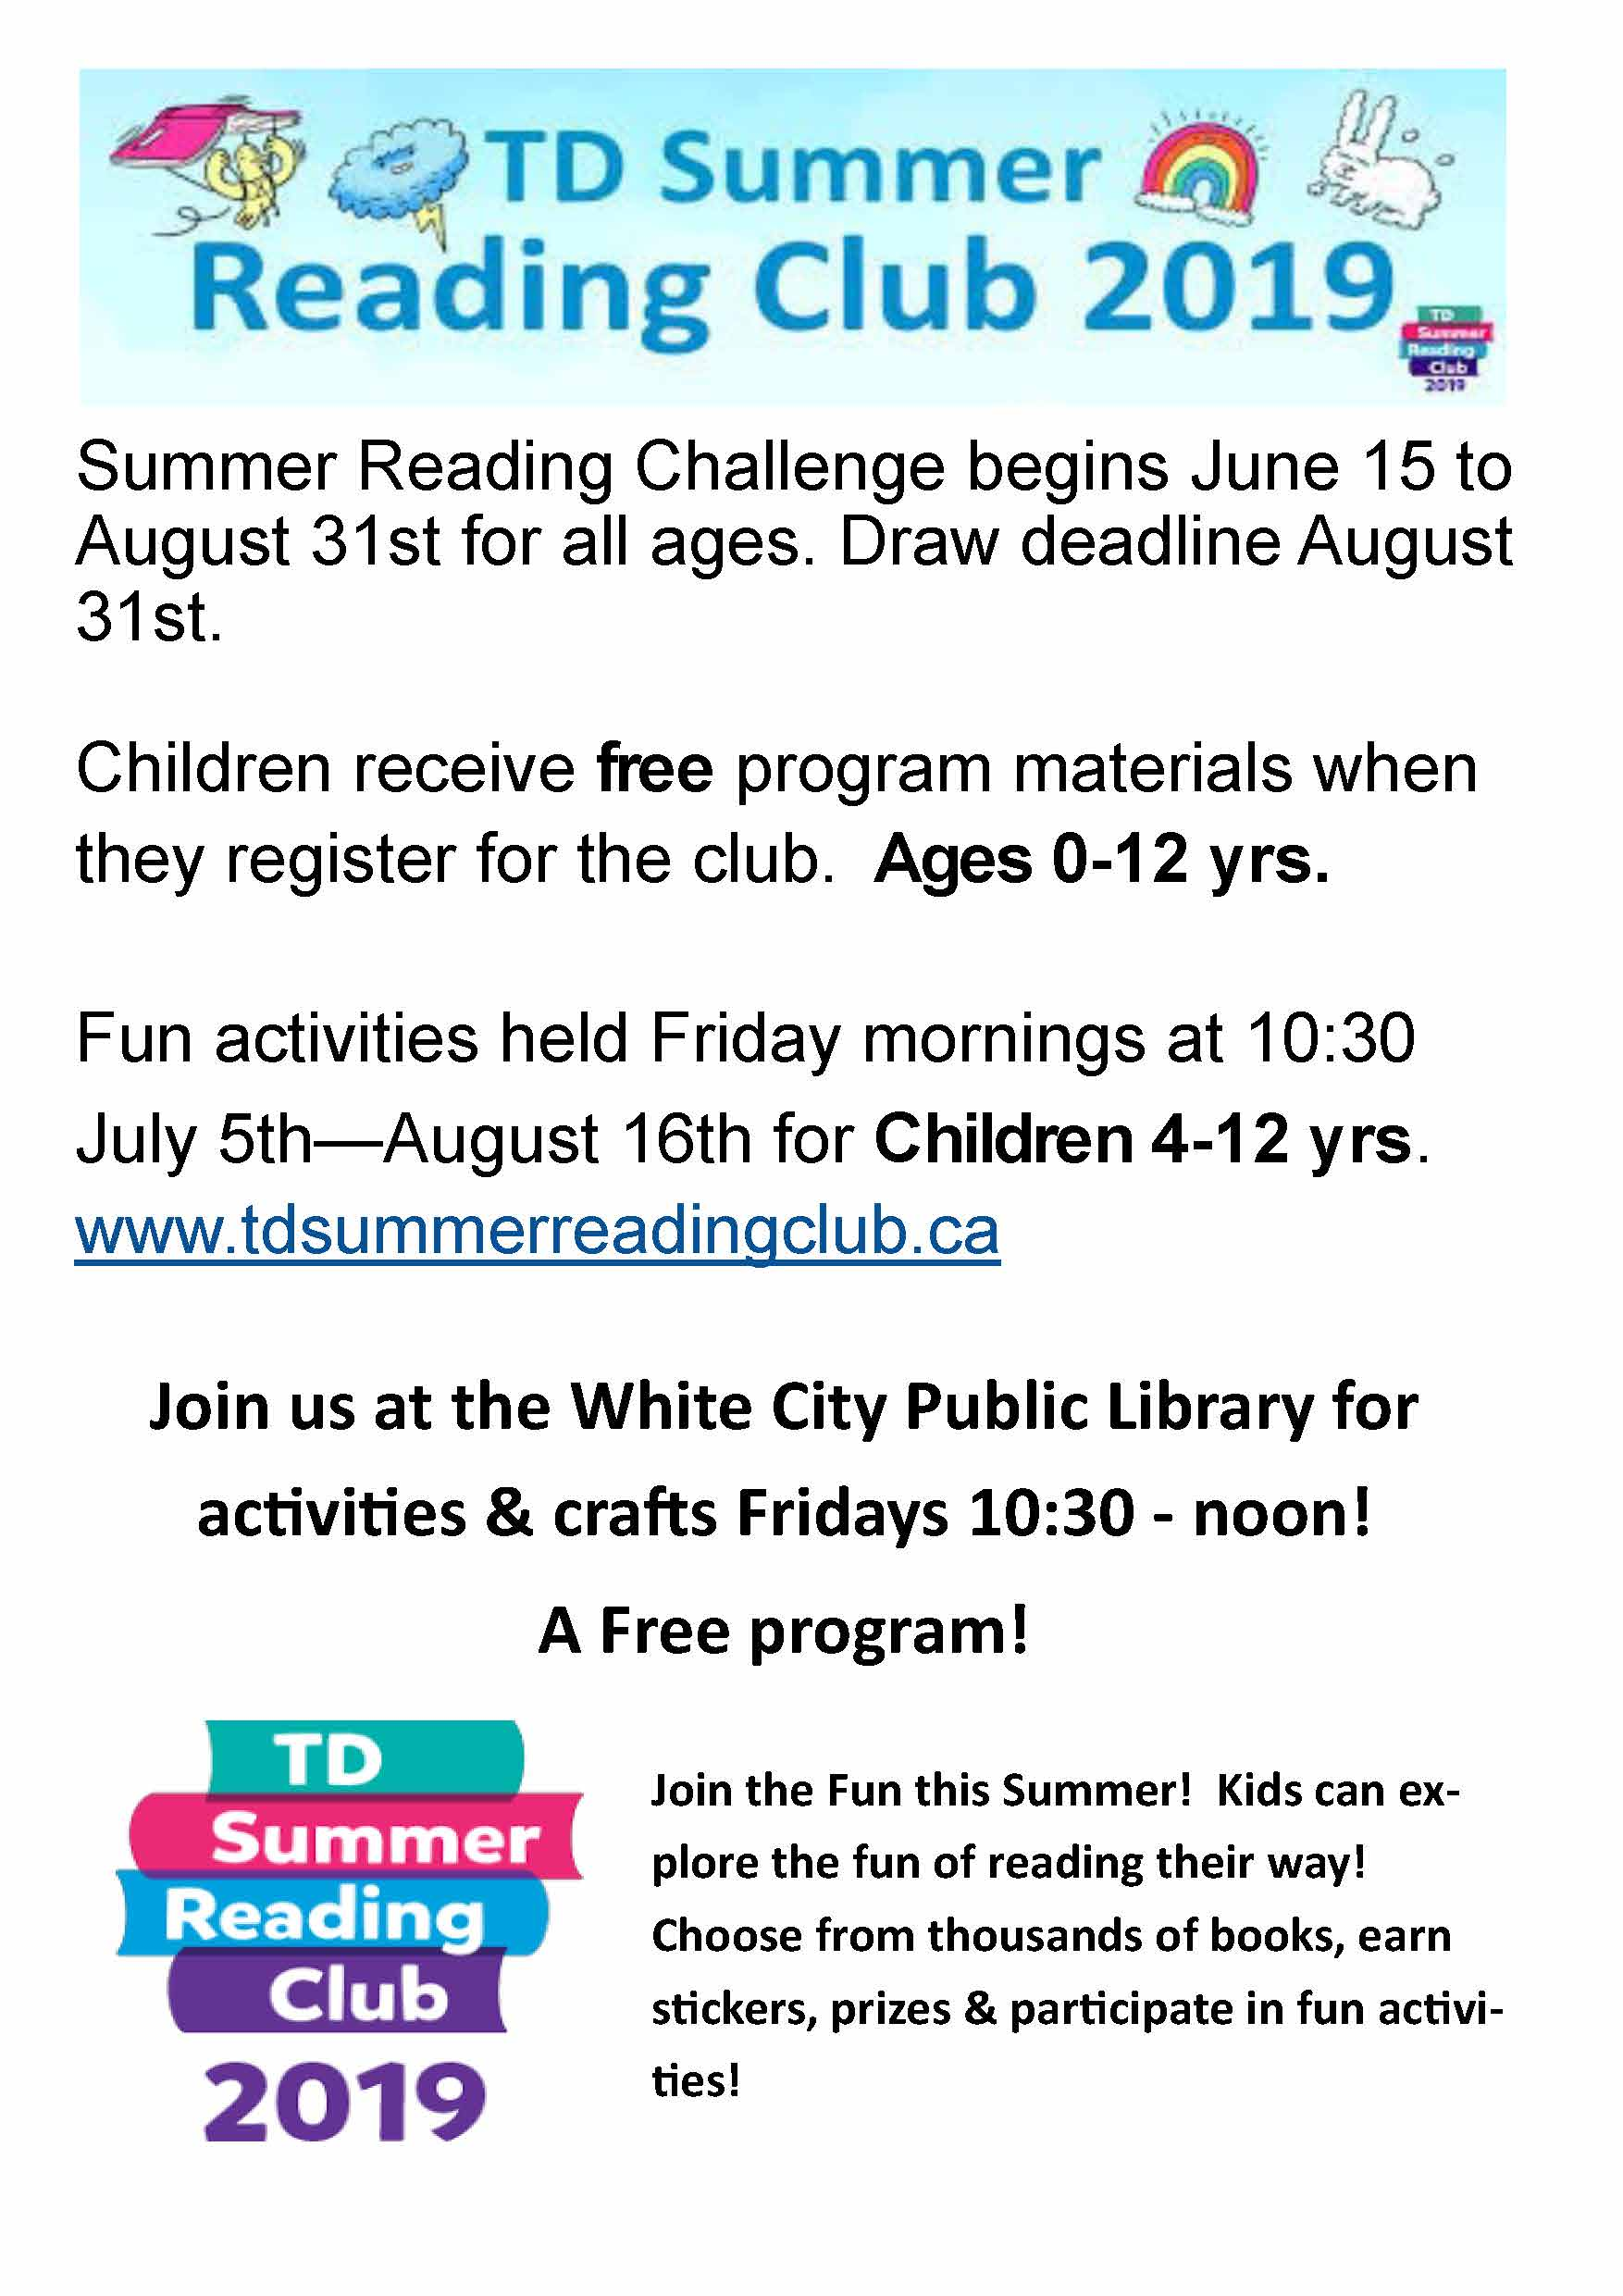 Library: Summer Reading Club - Image 1